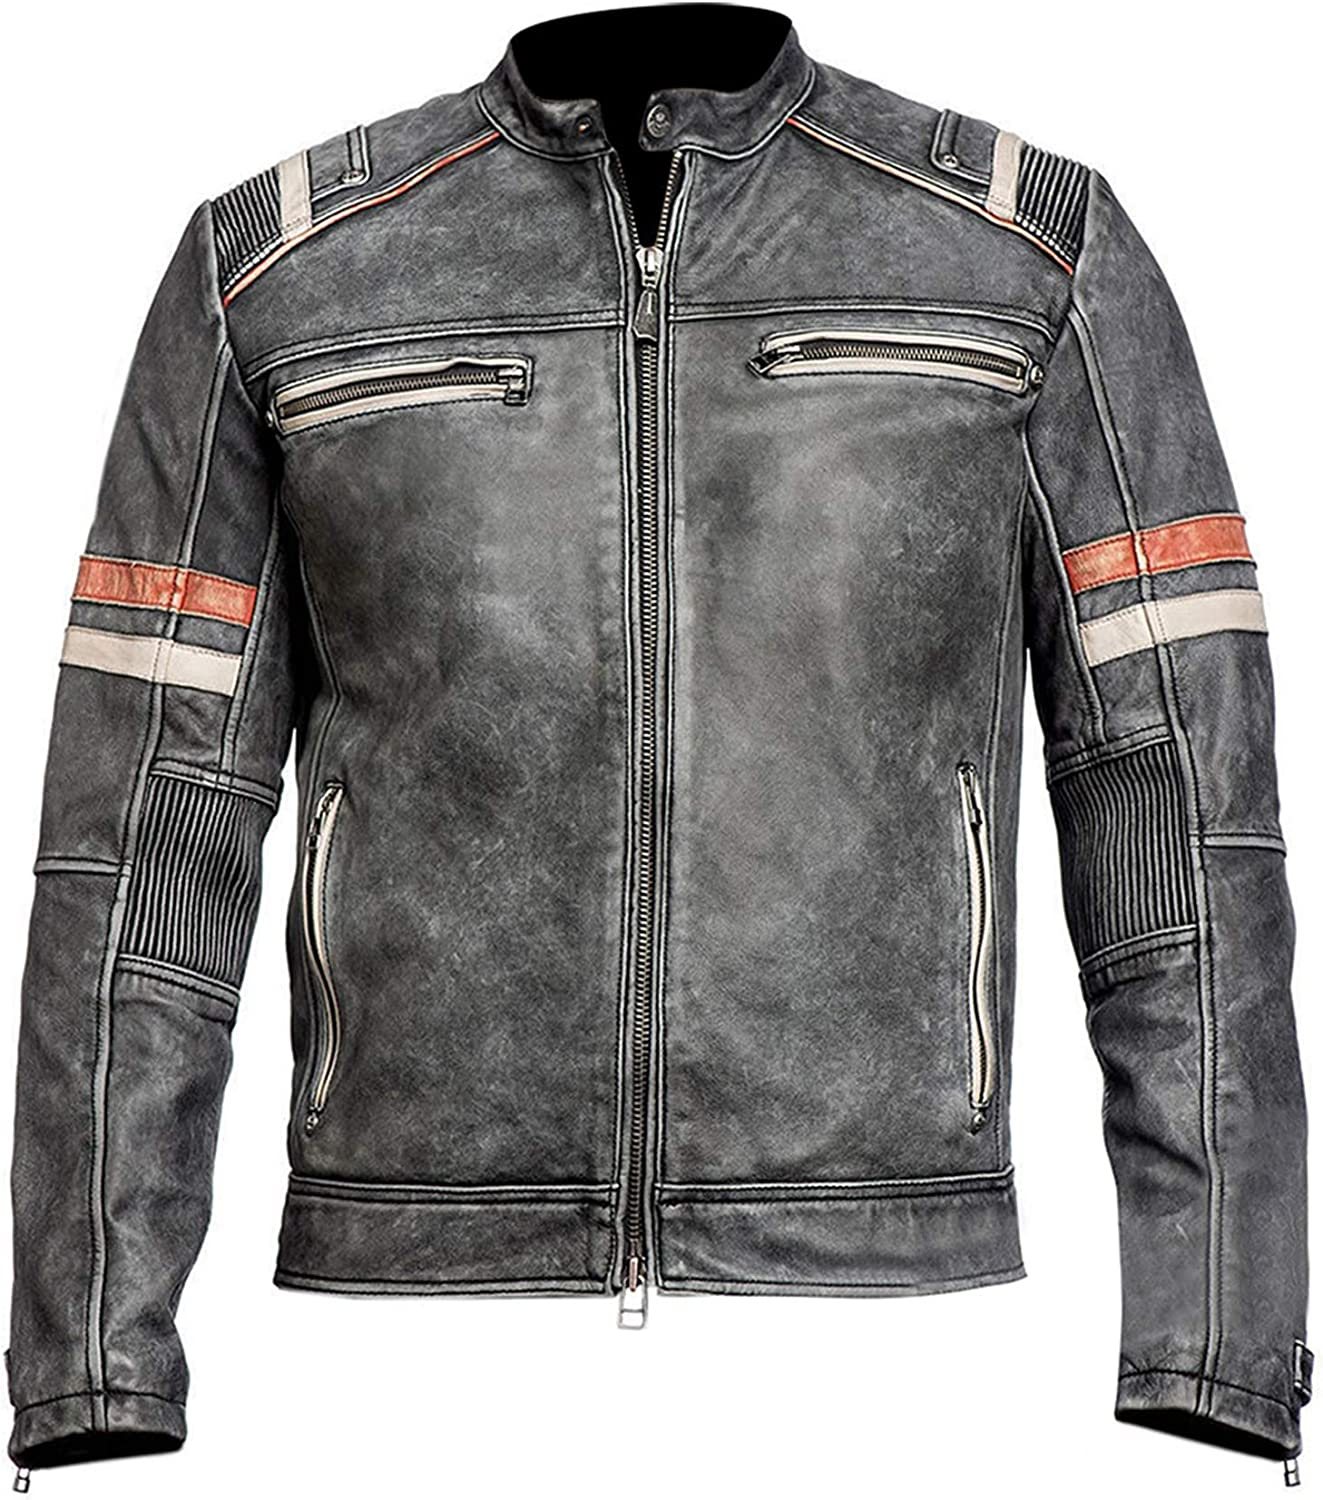 Max 90% OFF Cafe Racer Jacket Vintage Motorcycle Moto Max 89% OFF Leath Distressed Retro